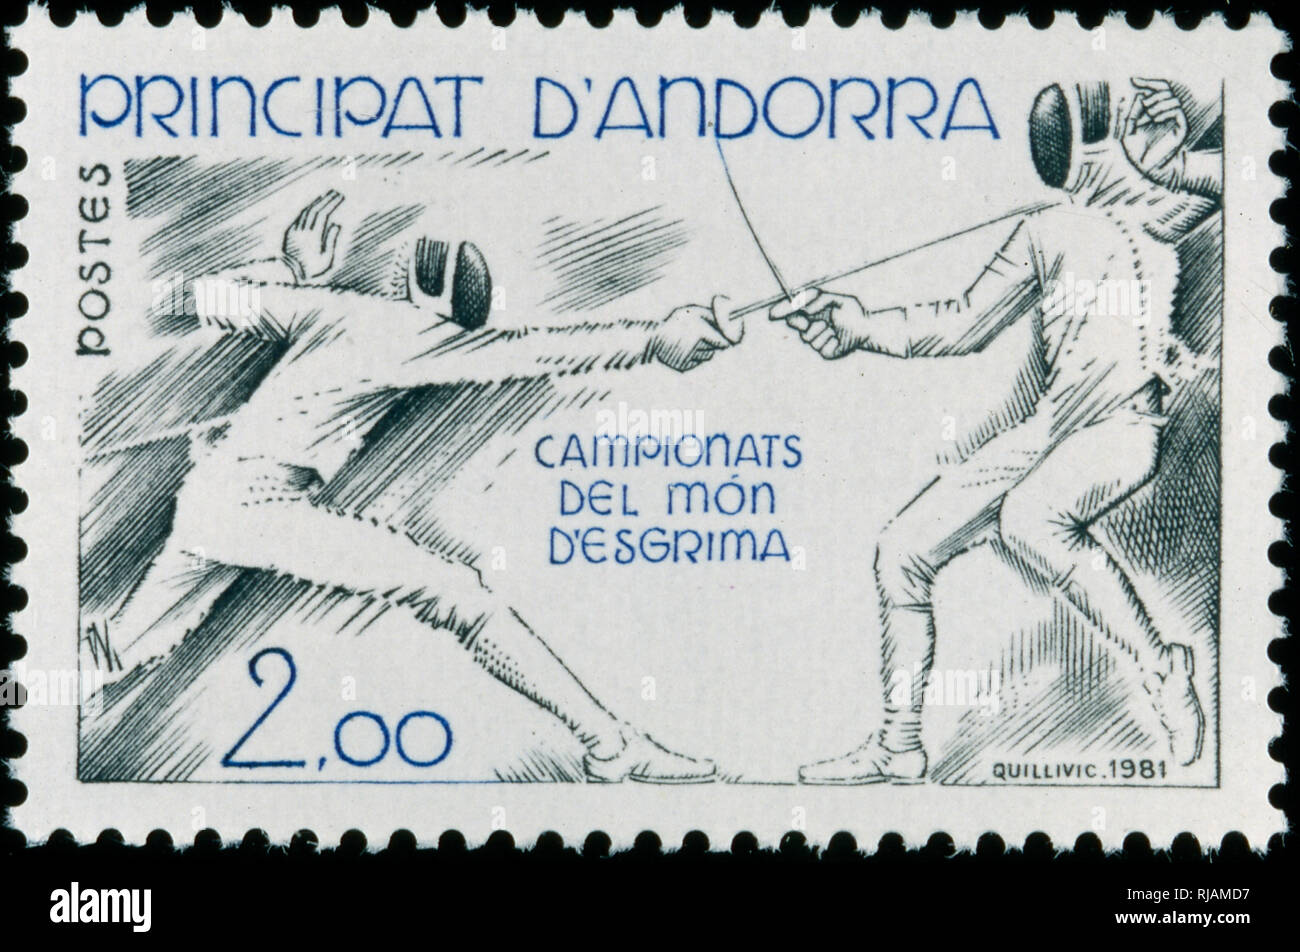 Andoran postage stamp commemorating the world fencing championship 1982 - Stock Image